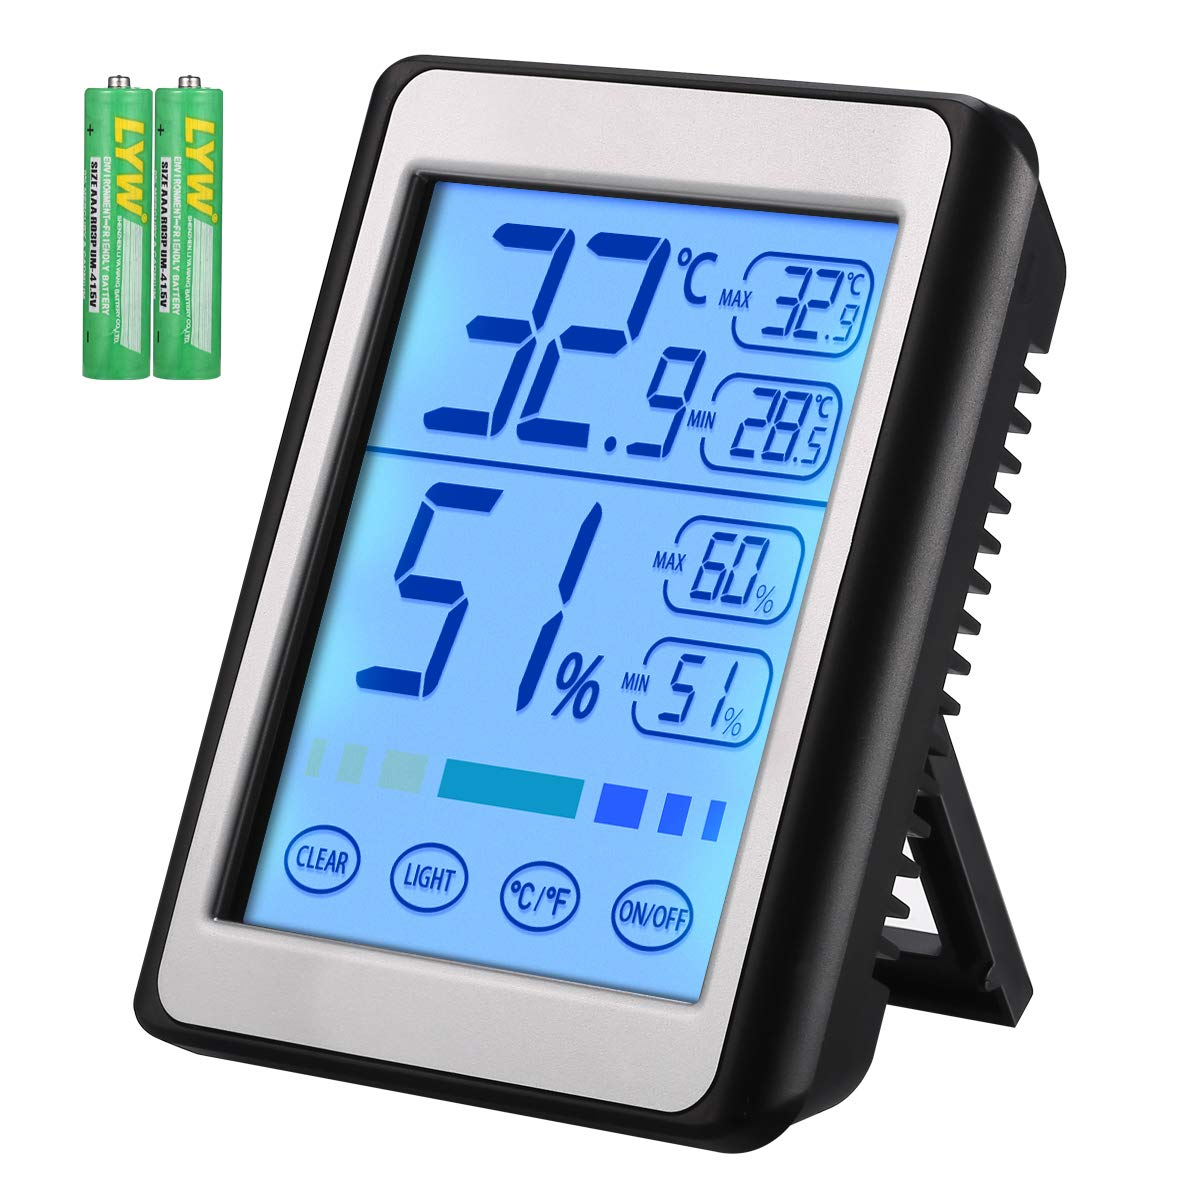 Brifit Indoor Thermometer with Humidity Monitor, Digital Hygrometer, Accurate Temperature Indicator with Touch LCD Backlight, Humidity Gauge Meter for Home, Office (Battery Included) by AMIR